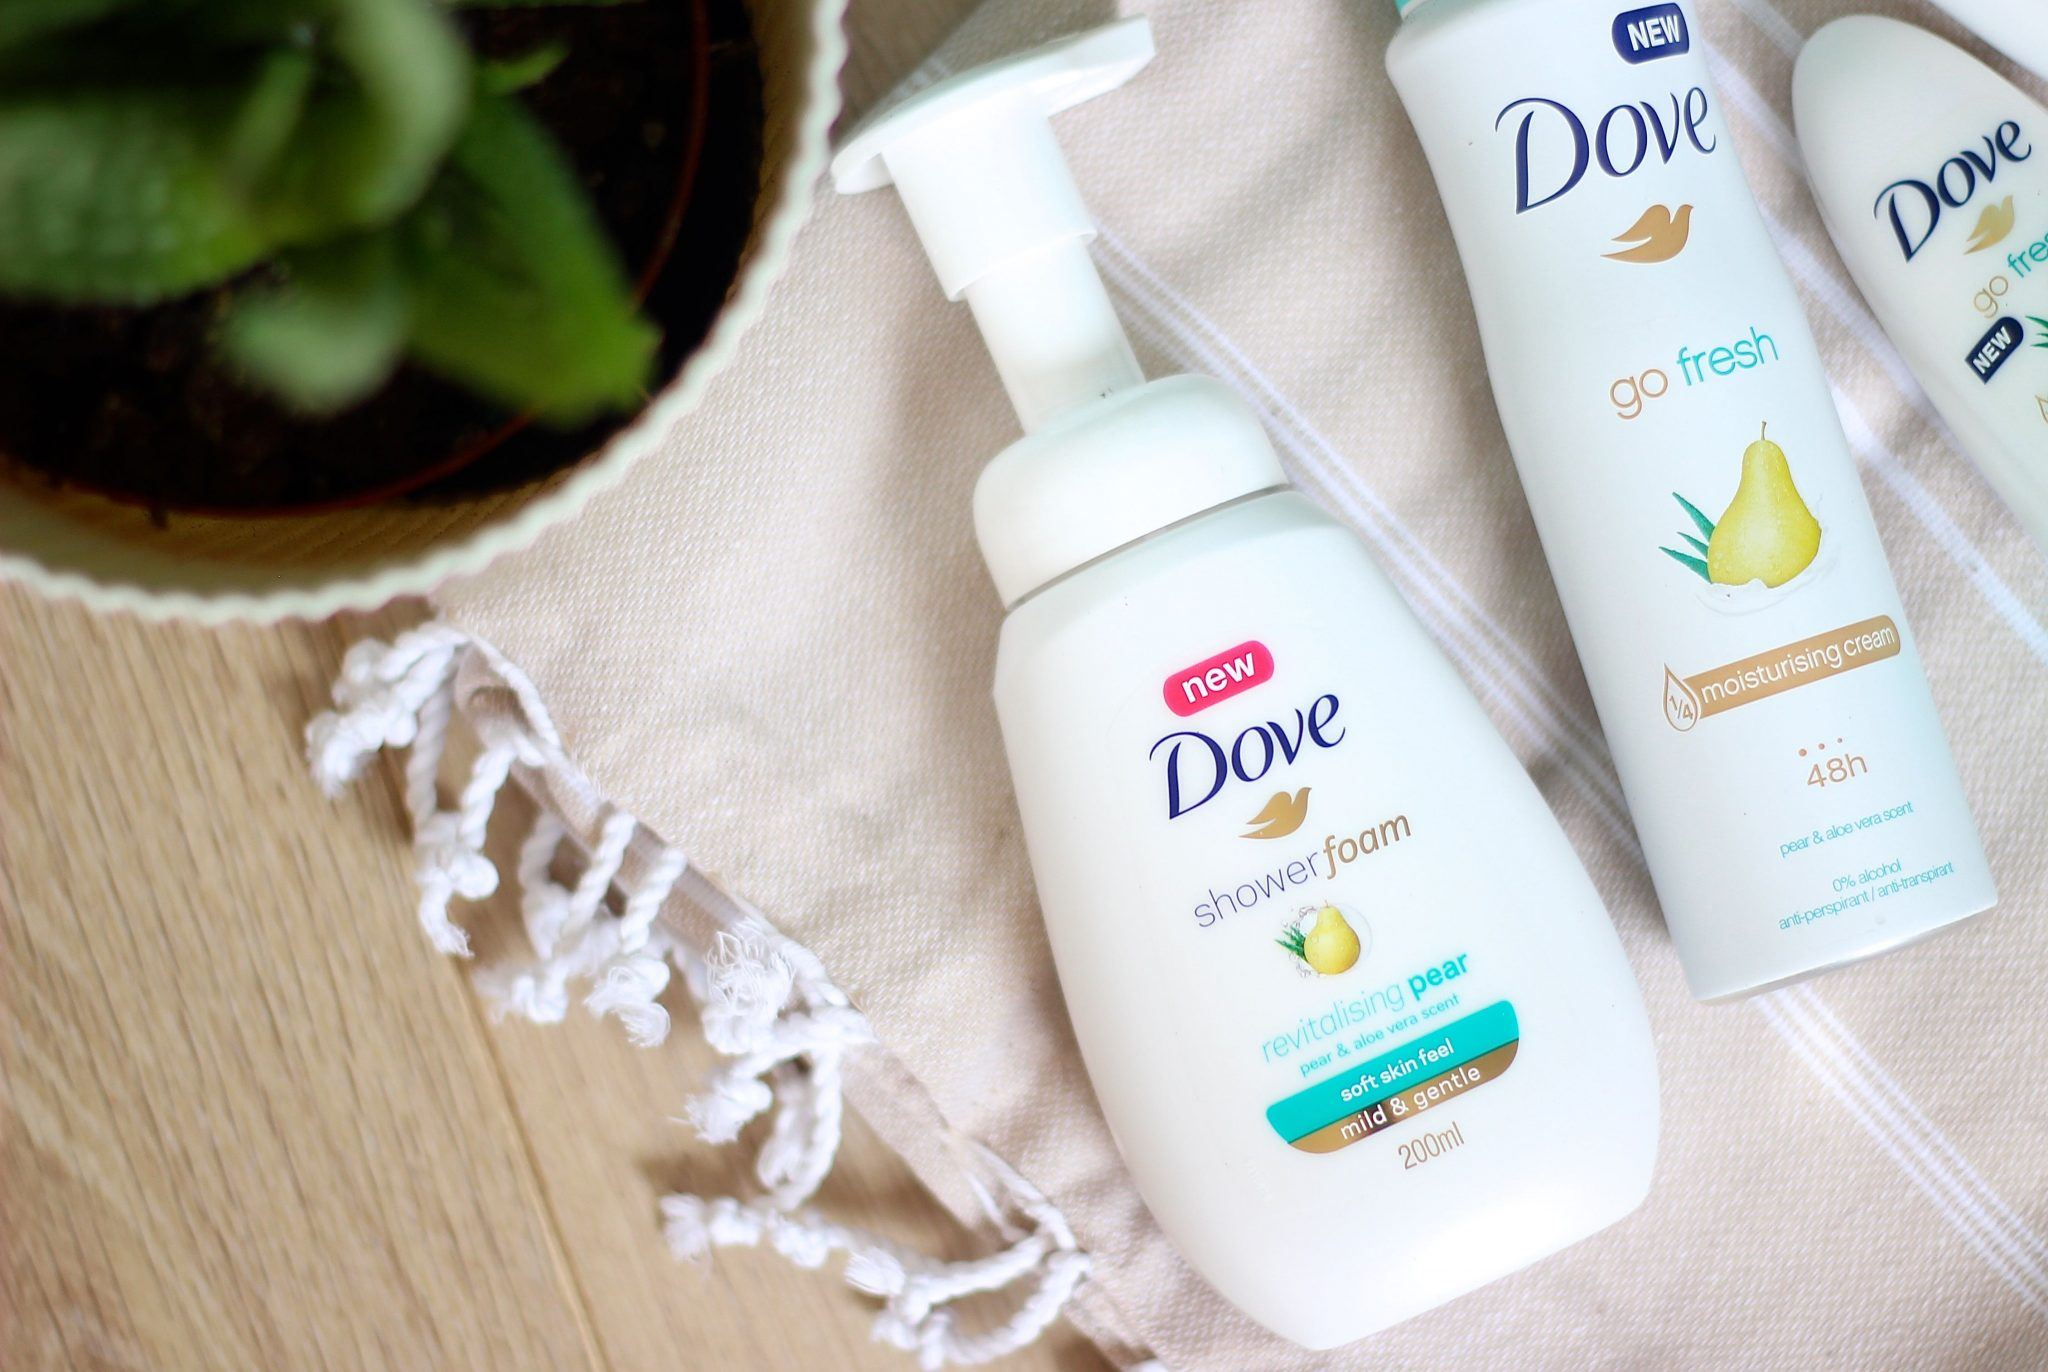 Dove Go Fresh Peer Aloe Vera douche foam